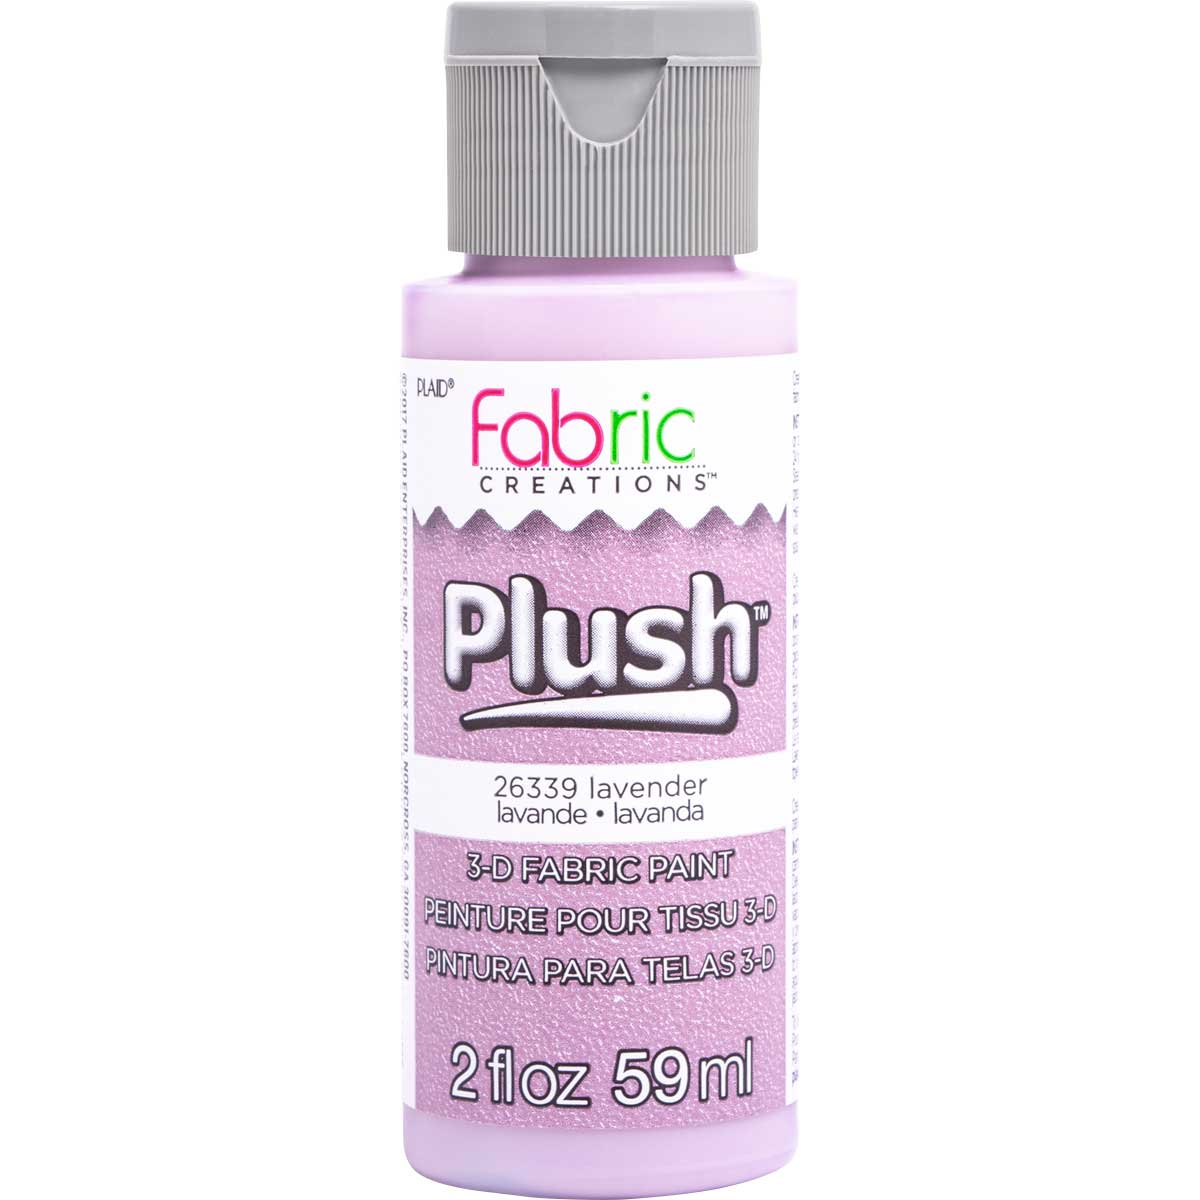 Fabric Creations™ Plush™ 3-D Fabric Paints - Lavender, 2 oz.